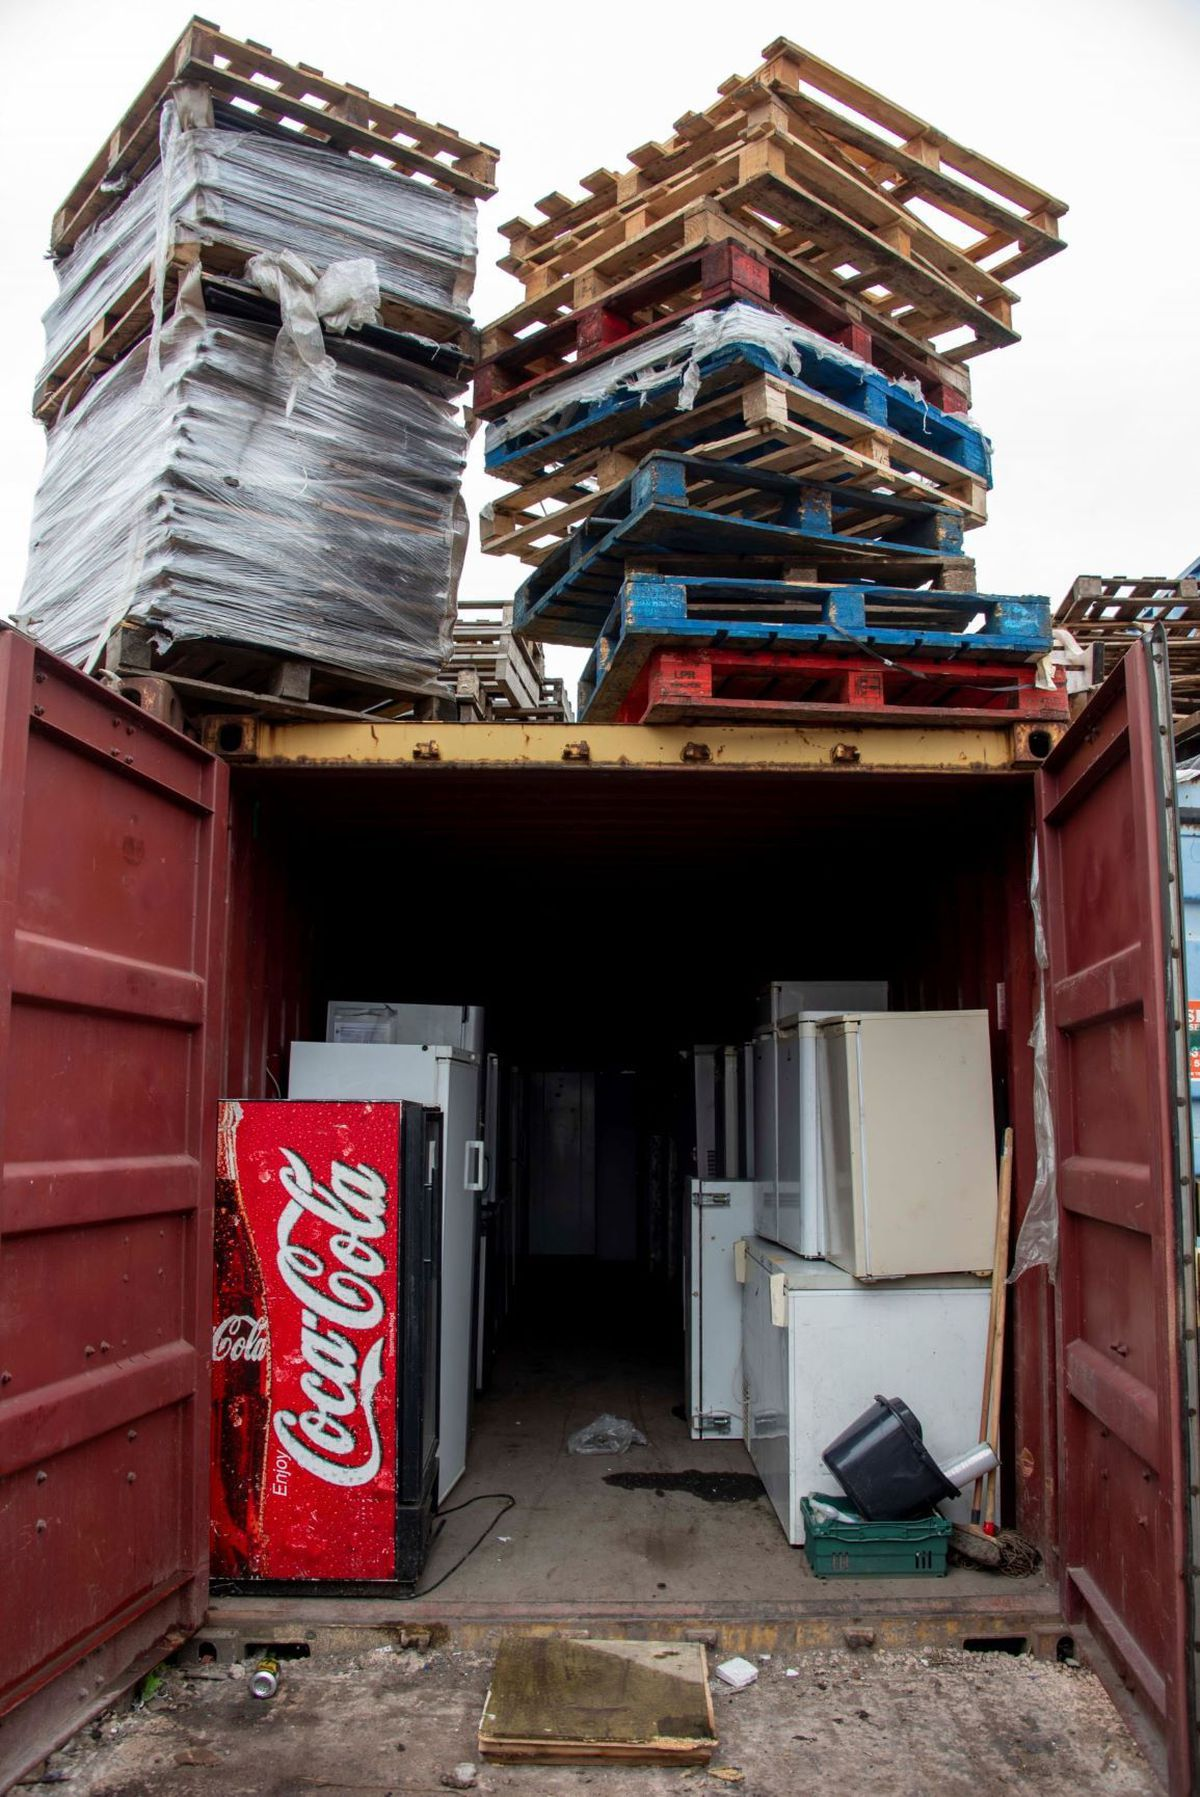 Stacked pallets and discarded fridges and freezers